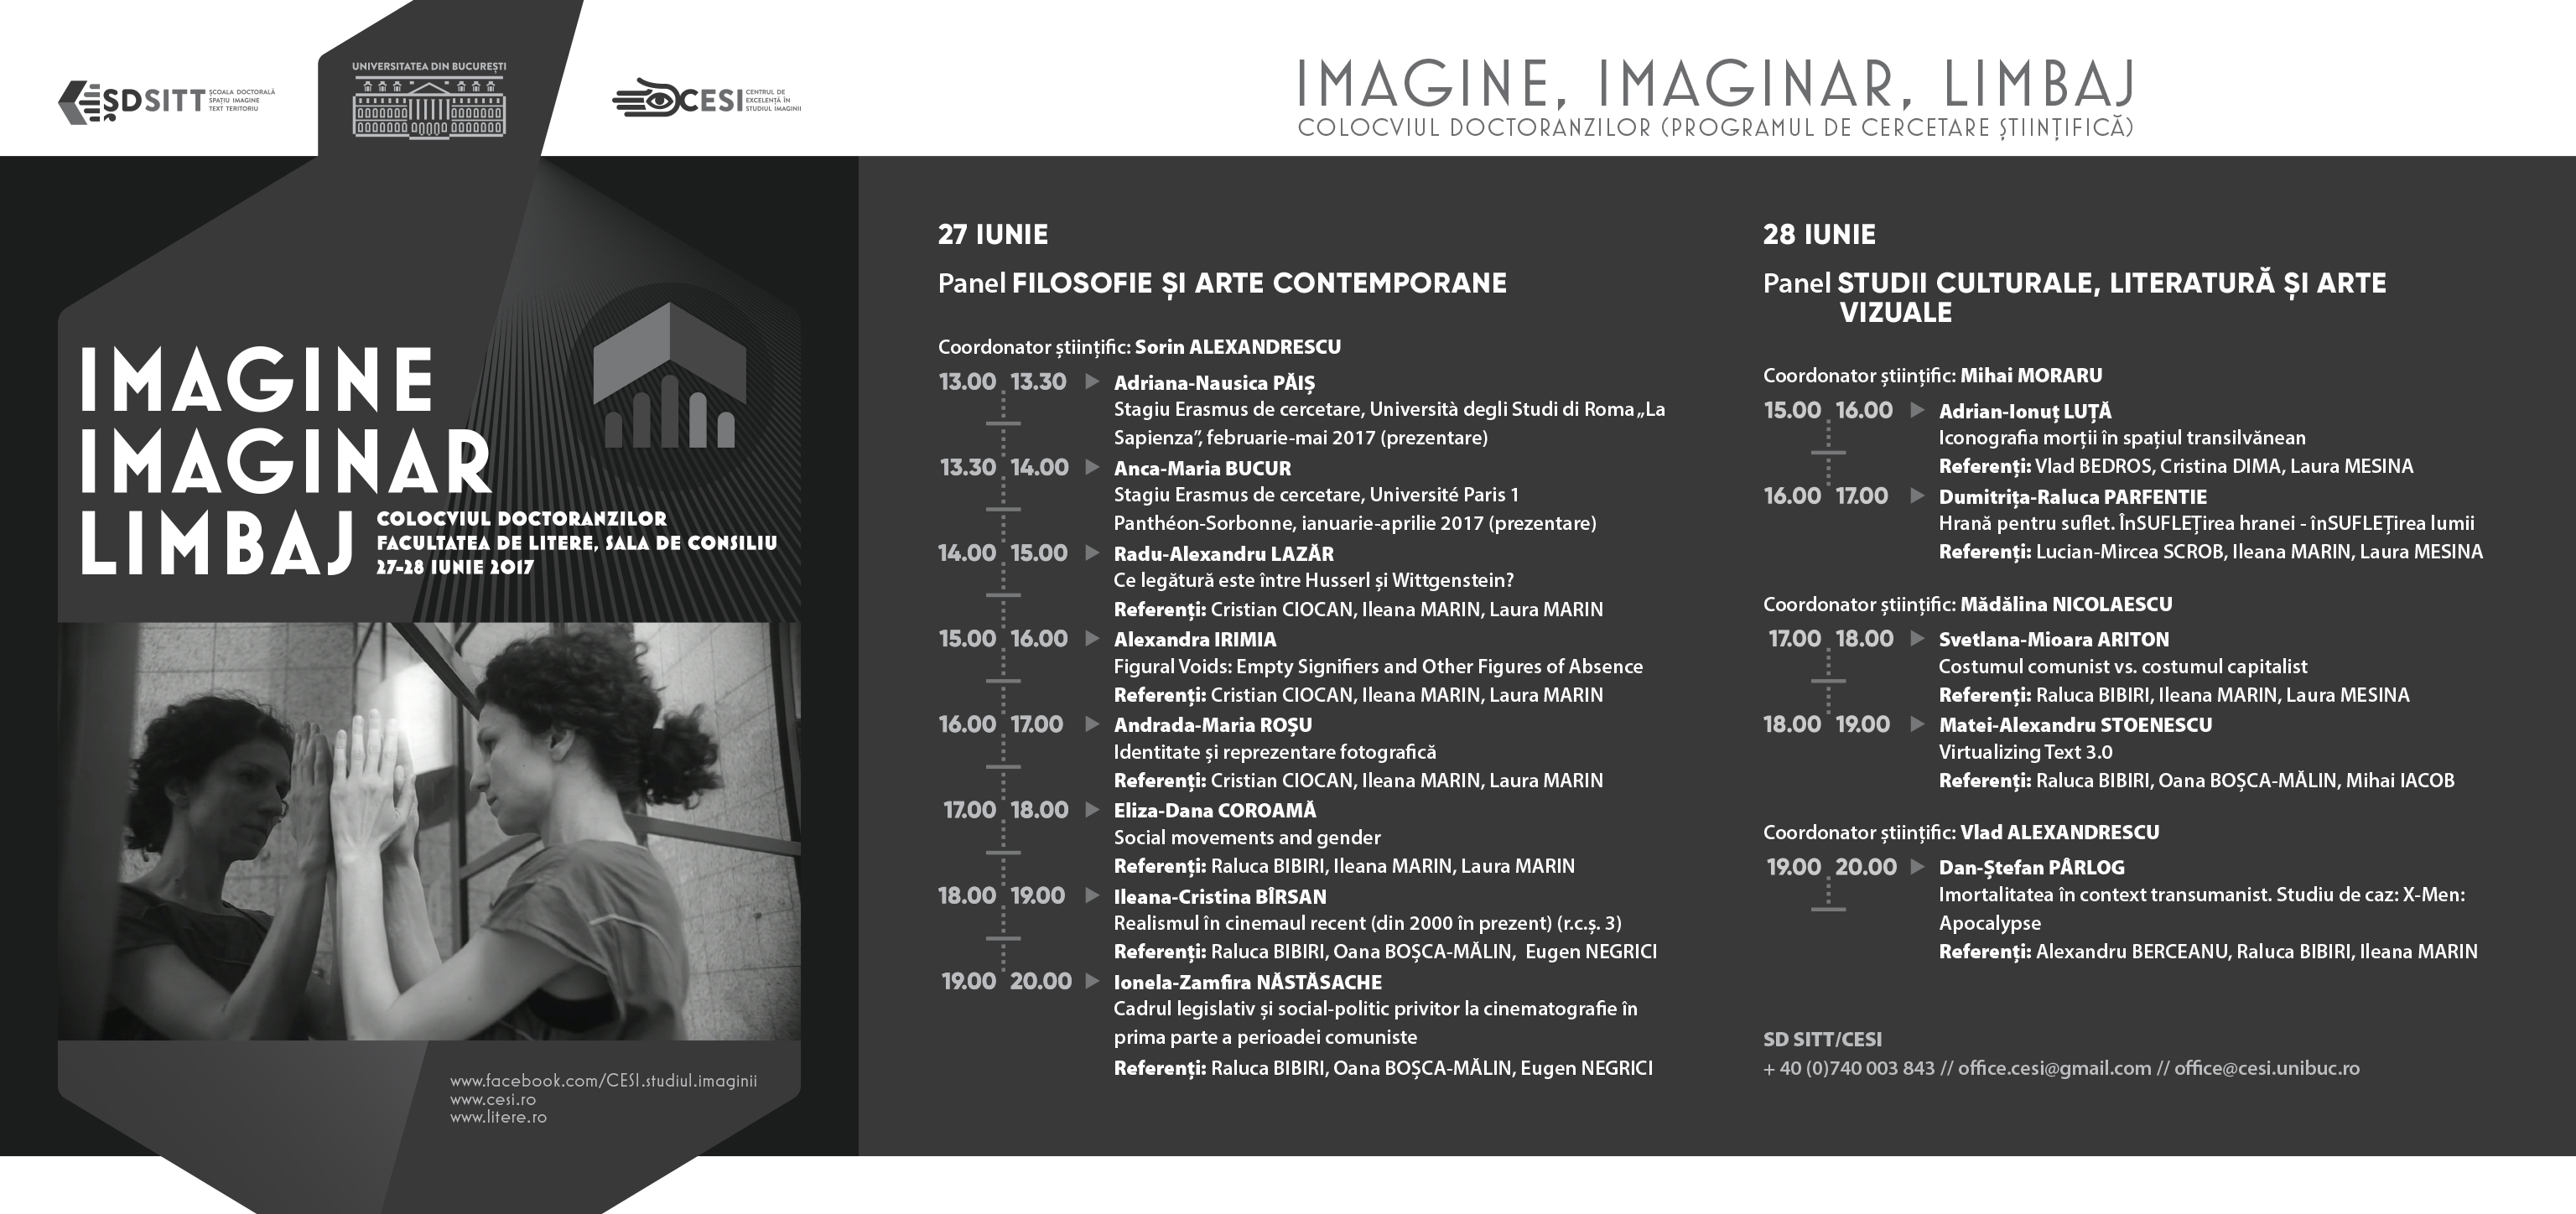 Program IMAGINE, IMAGINAR, LIMBAJ, 27-28 iunie